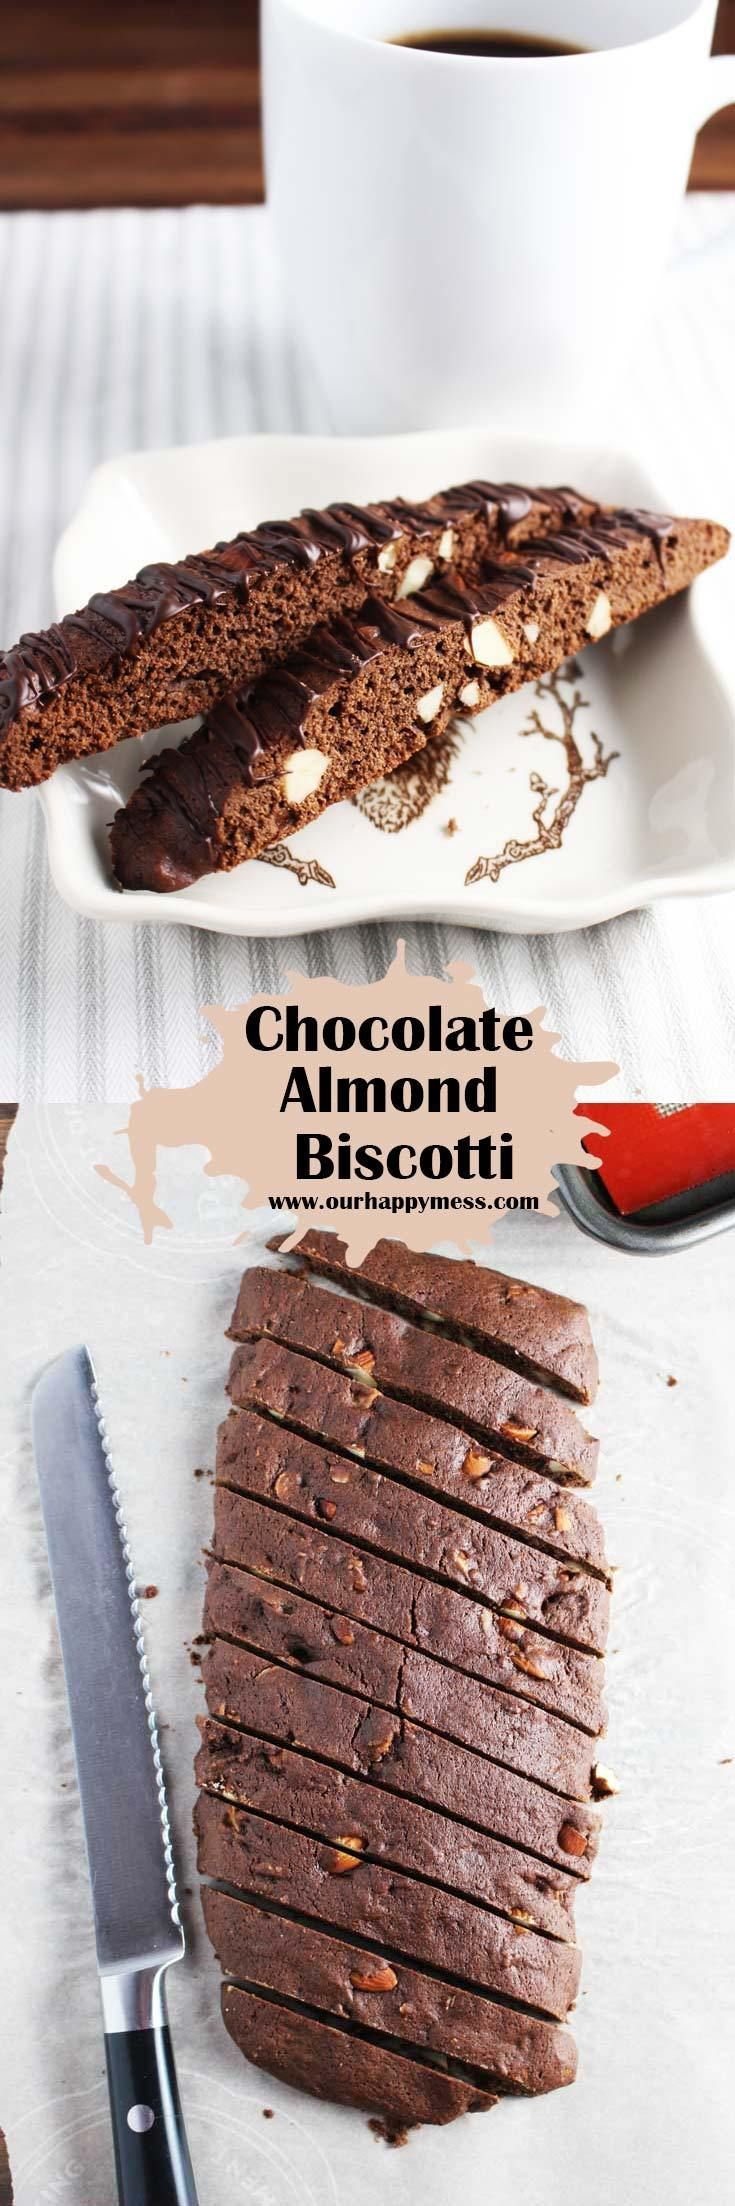 Chocolate almond biscotti are easy and fun to make. Drizzle with chocolate or leave them plain for dunking in your coffee. #biscotti #ediblegifts #cookies #chocolatealmondbiscotti